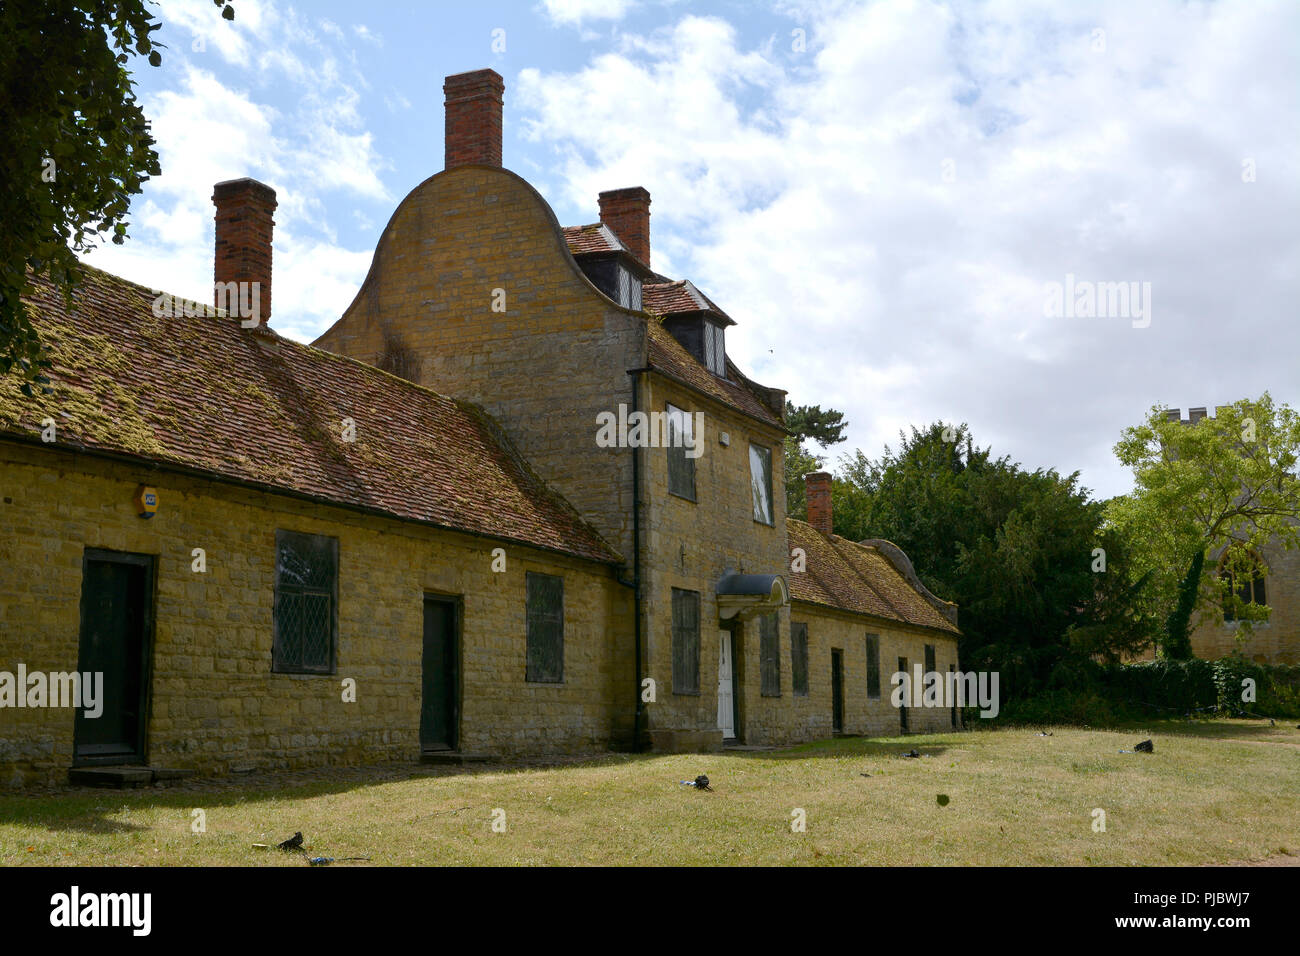 View of School and Almshouses, Great Linford Manor Park, Buckinghamshire - Stock Image